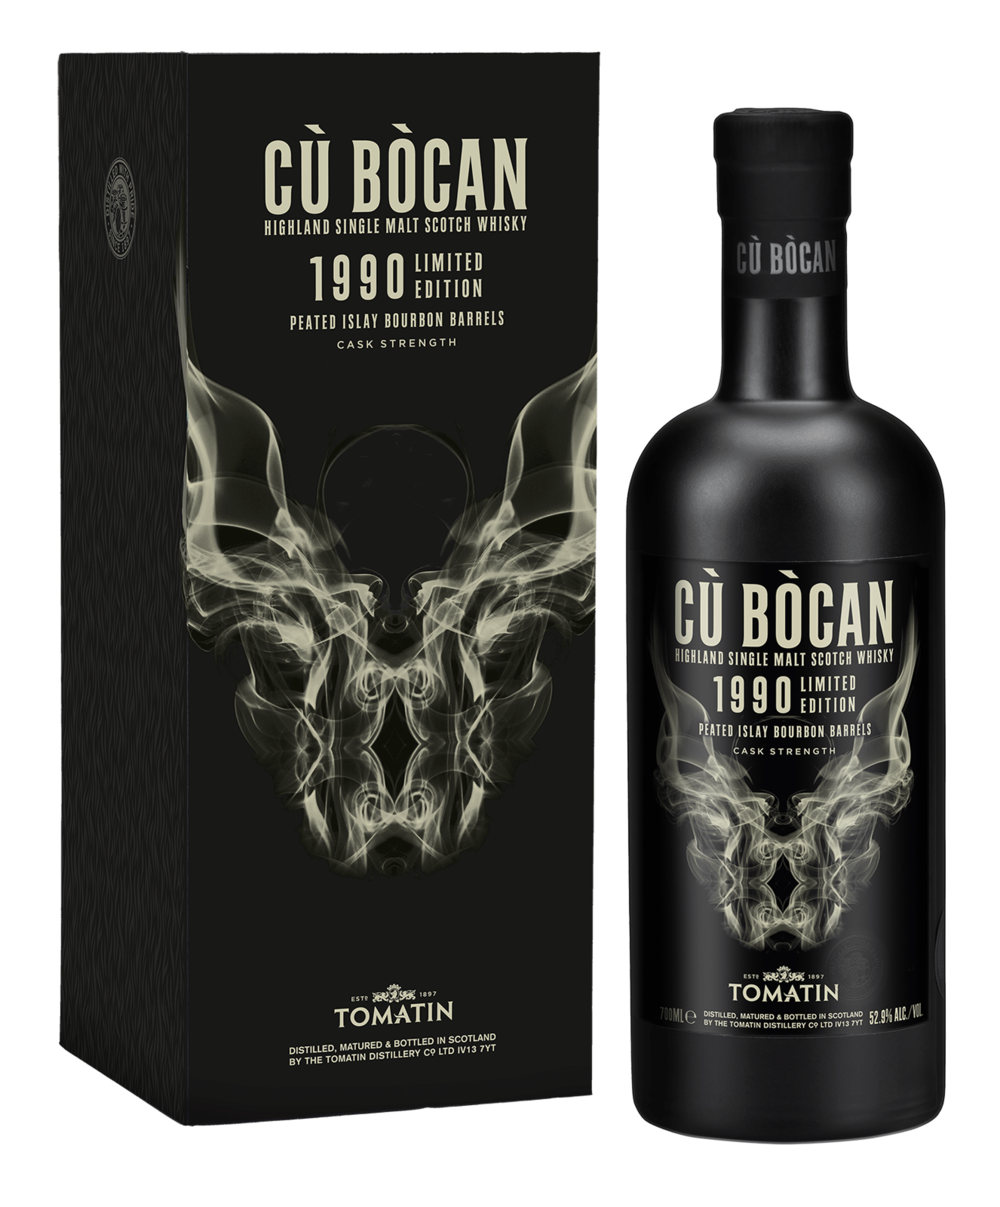 Cu-Bocan-1990-Bottle-Box-DarkBG-SM-110918.png